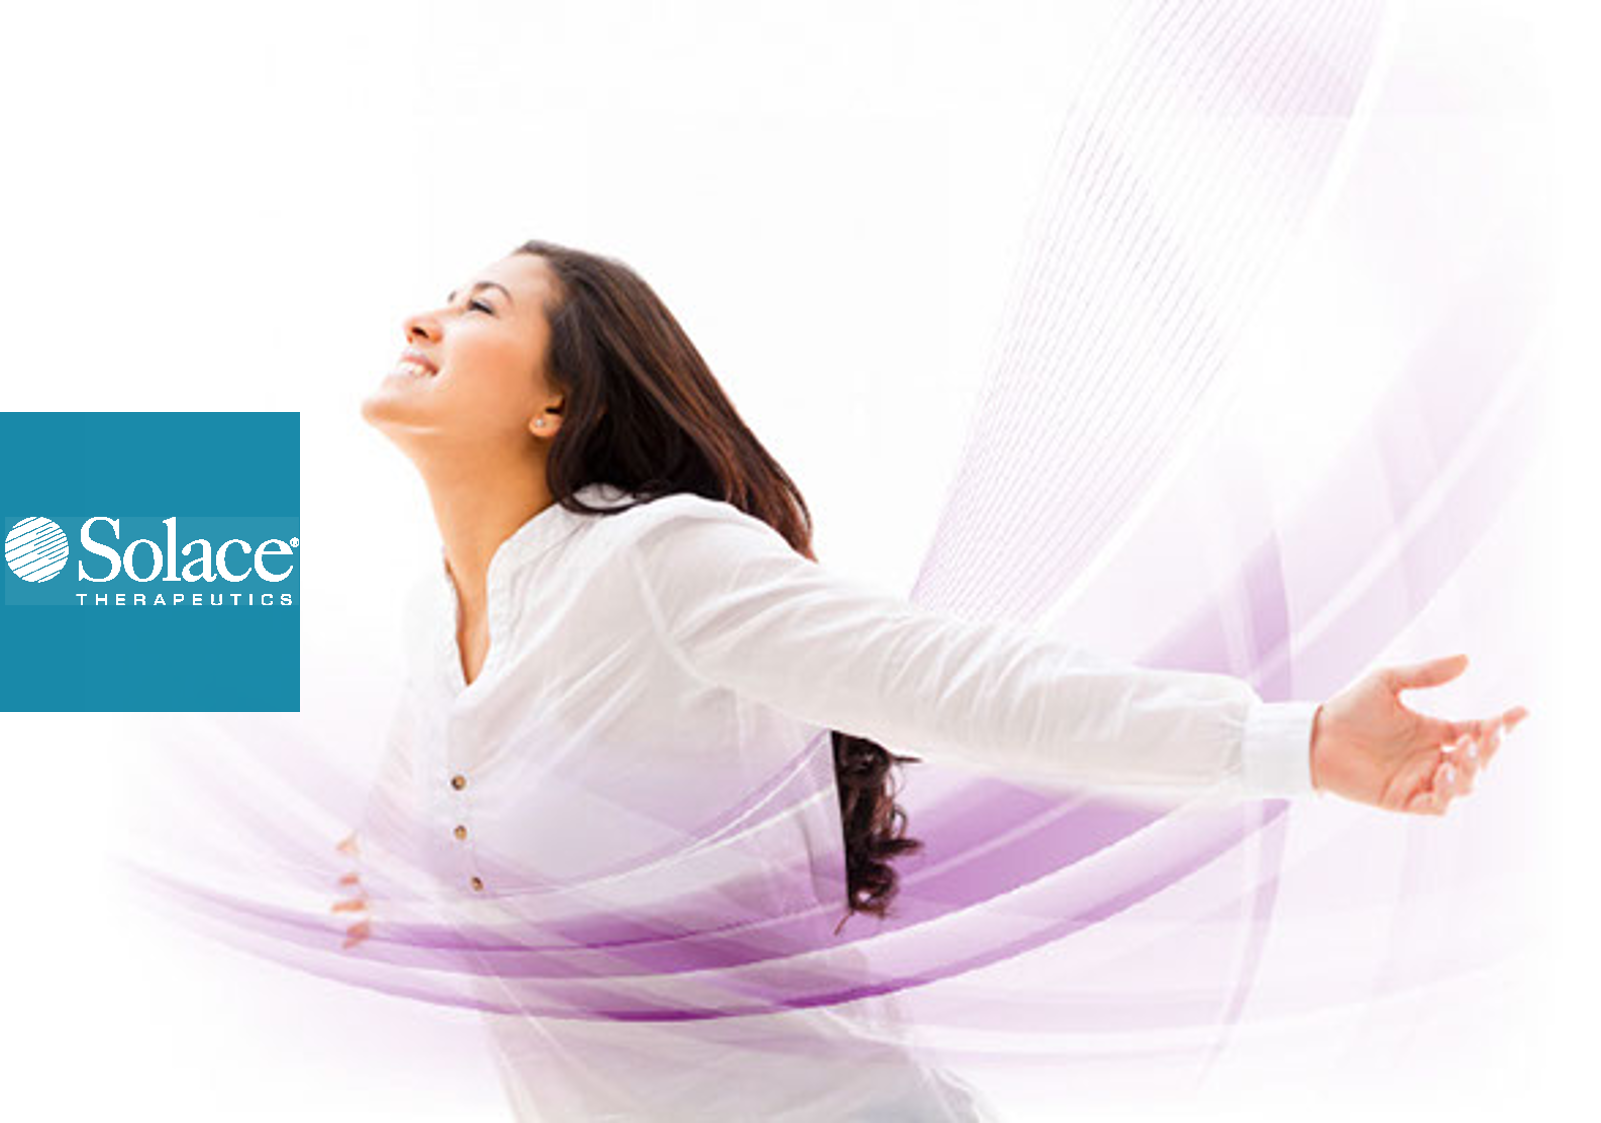 Non-Surgical Treatment for Incontinence - solacetx.com HQ:  Boston, MASector: Healthcare TechnologyS3 Investments: Series A